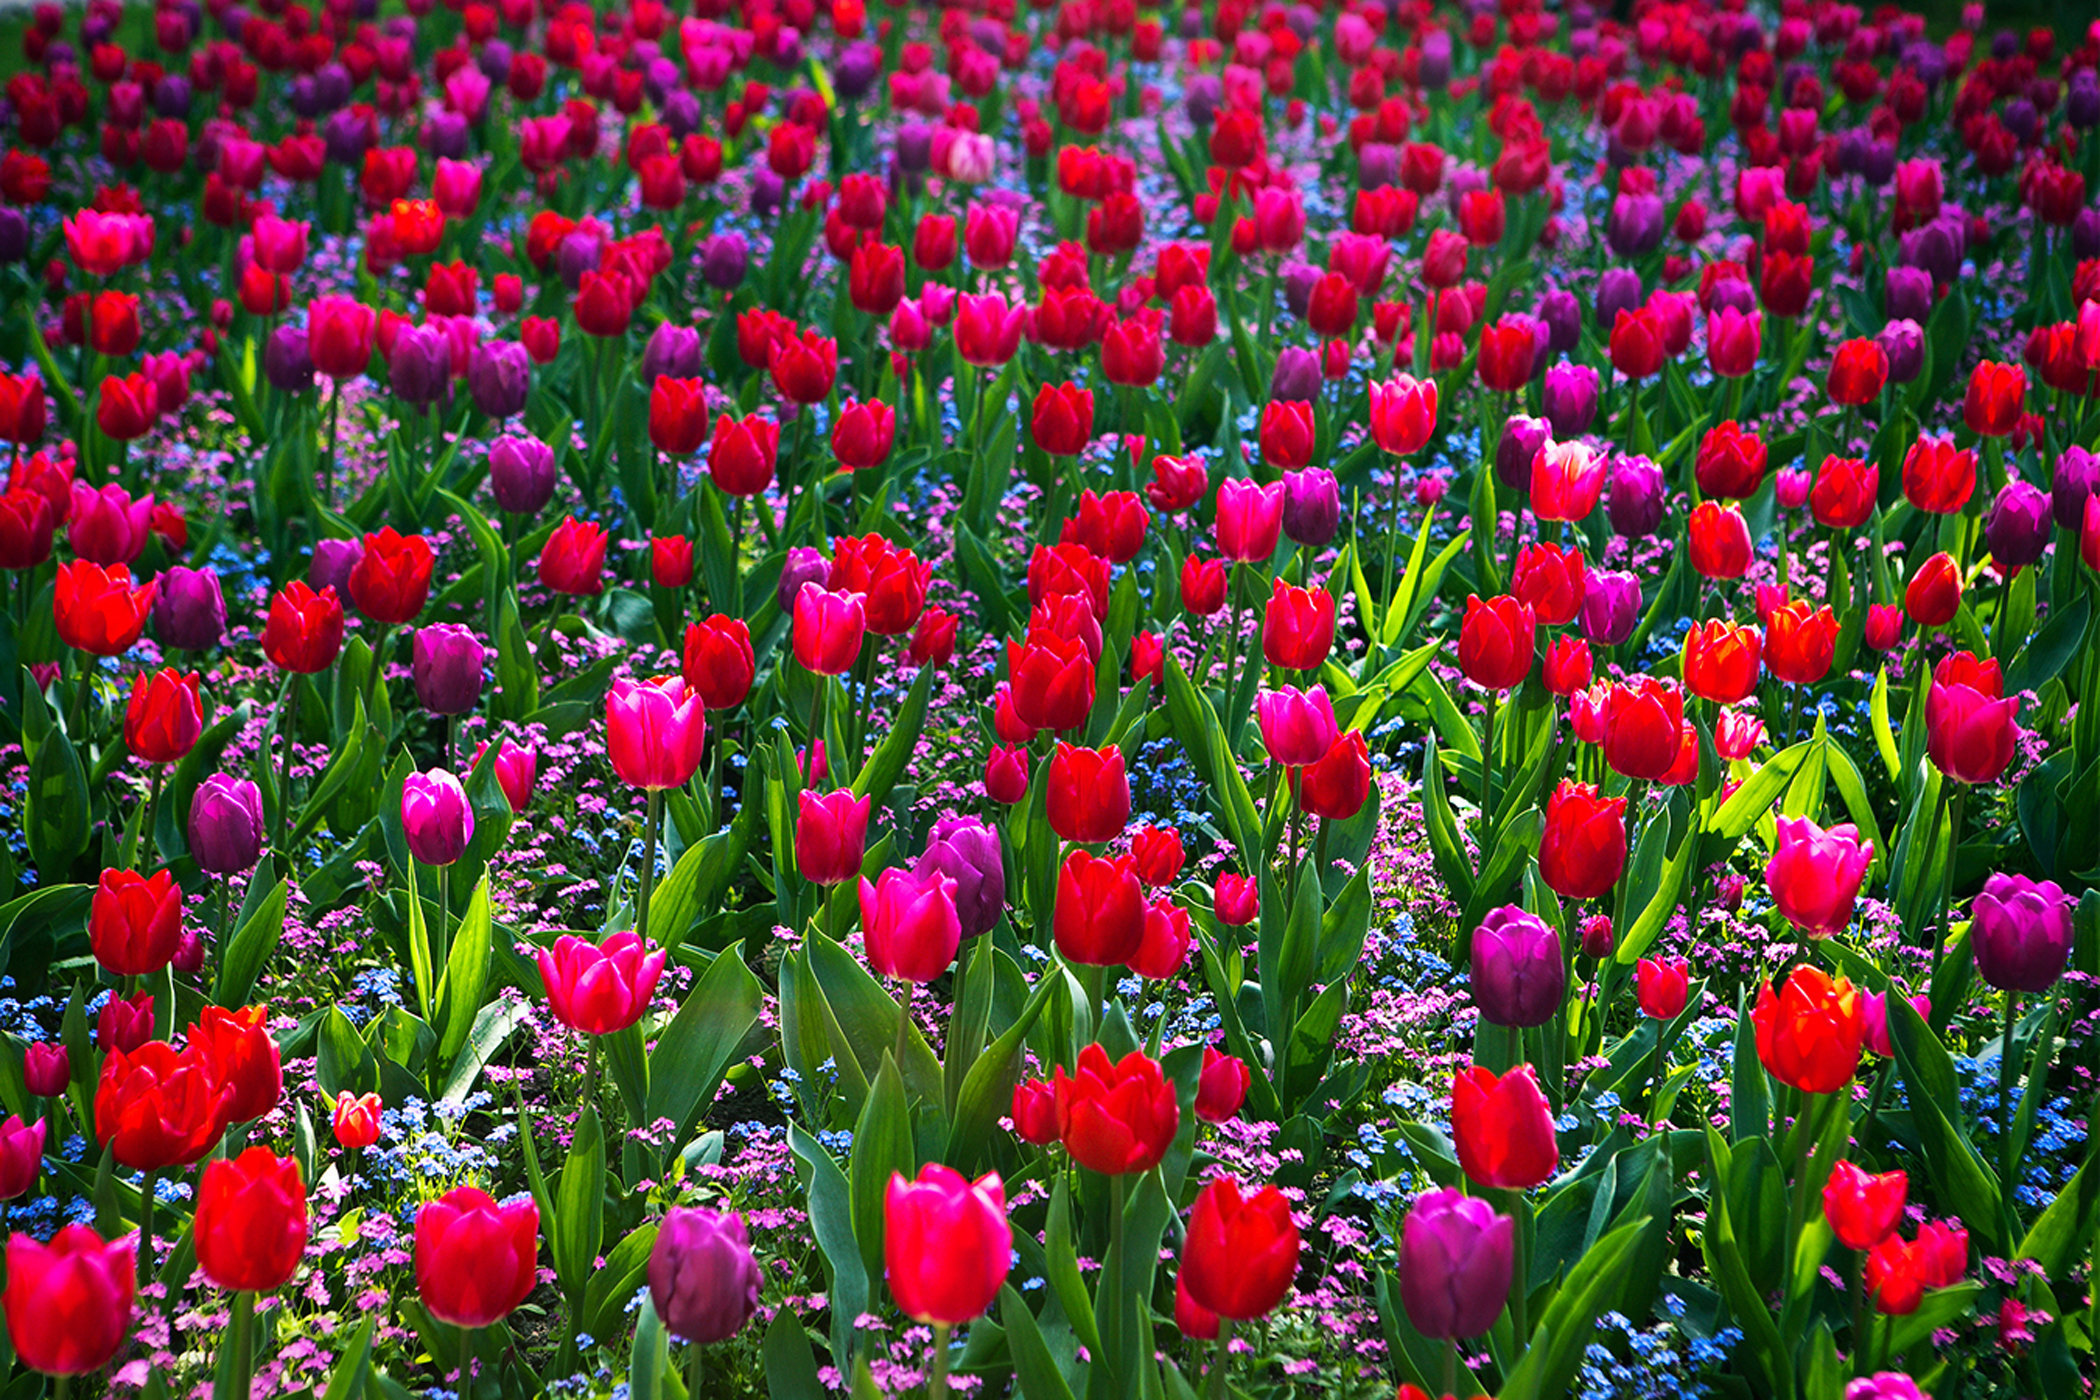 Tulips Take Over